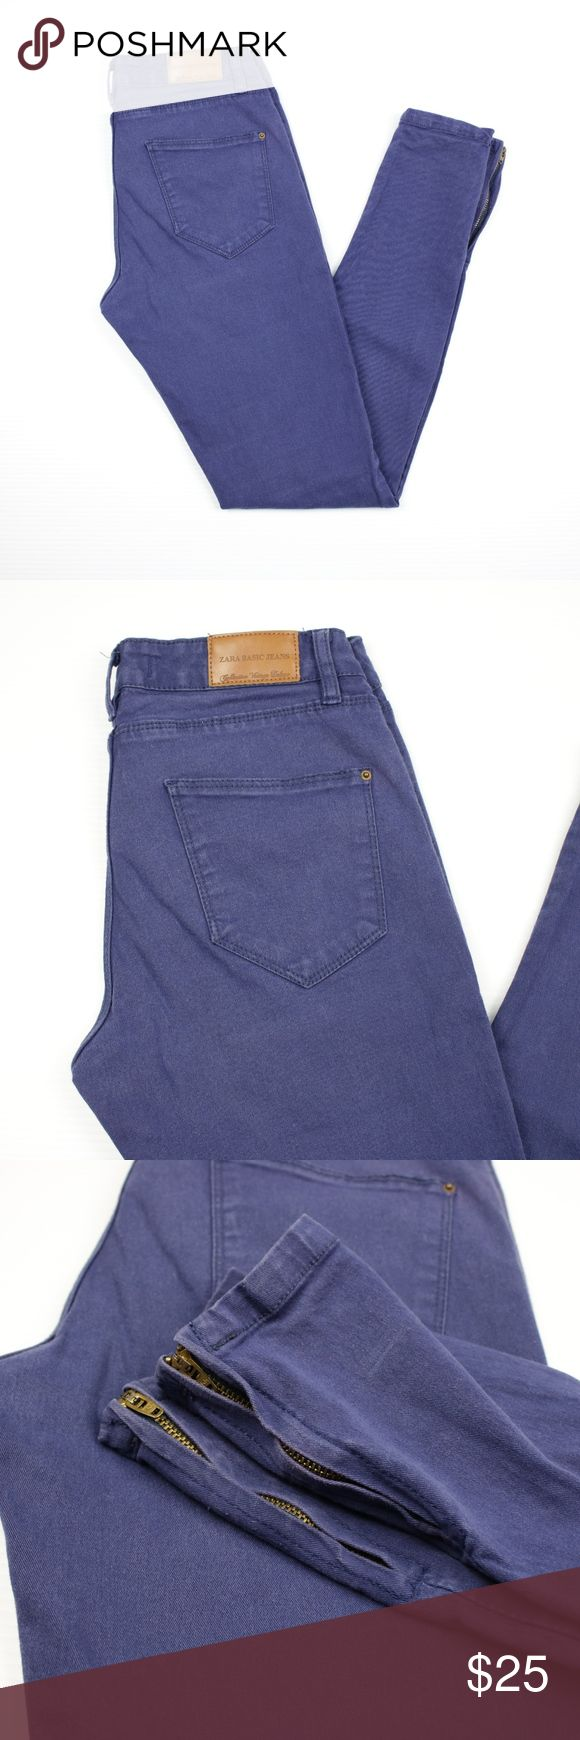 Zara Basic Blue Low Waist Skinny Jeans with Zipper - Size: 4 - Made in Argentina - The material labels has been removed but it is stretchy. I would say that stretches 1-3 inches. - Excellent Condition. No stains. - No trades, thank you! - Pet and Smoke-Free Home  - Same or Next day Shipping  MEASUREMENTS: Waist: 13 inches Hip: 16.5 inches Rise (Crotch to Waist): 8 inches Inseam: 28.5 inches Outseam: 36 inches Zara Jeans Skinny